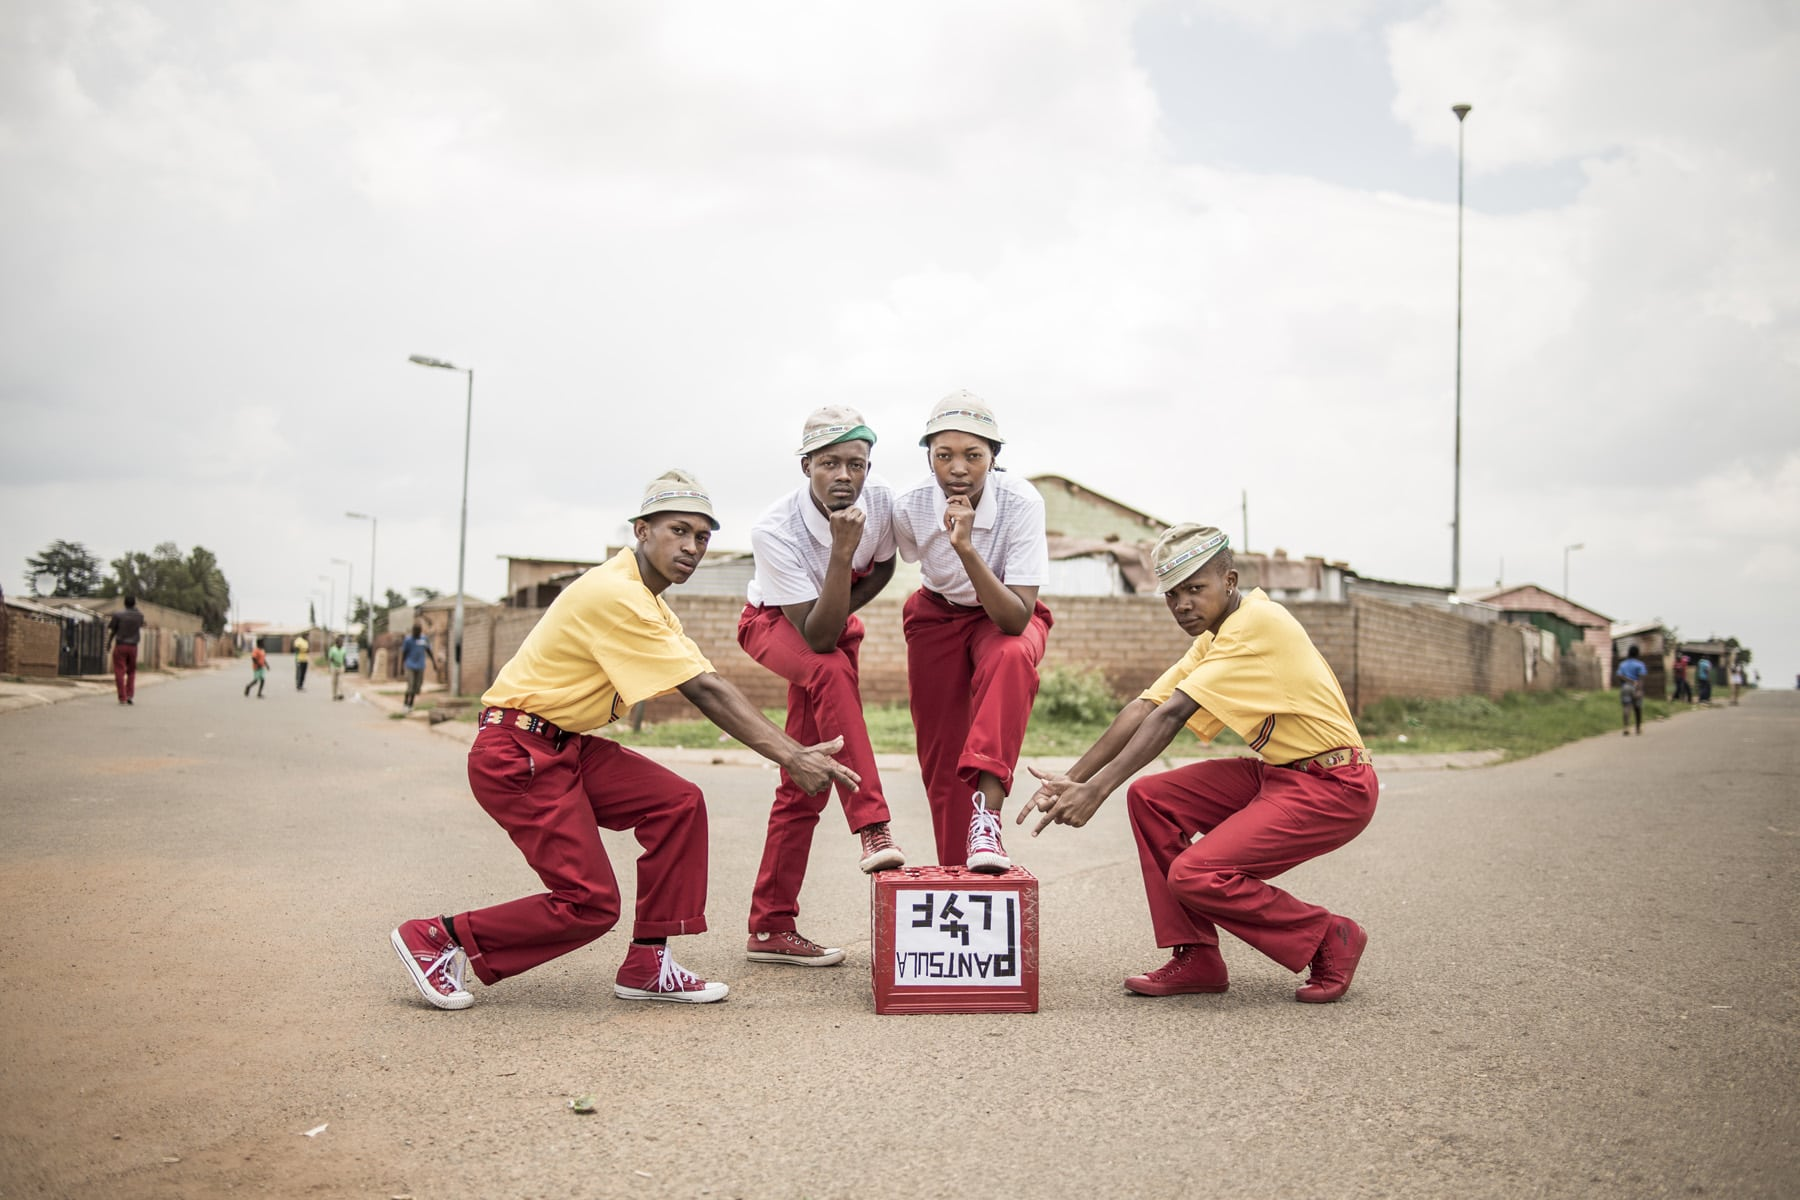 Pantsula 4 LYF: Popular Dance and Fashion in Johannesburg Exhibit